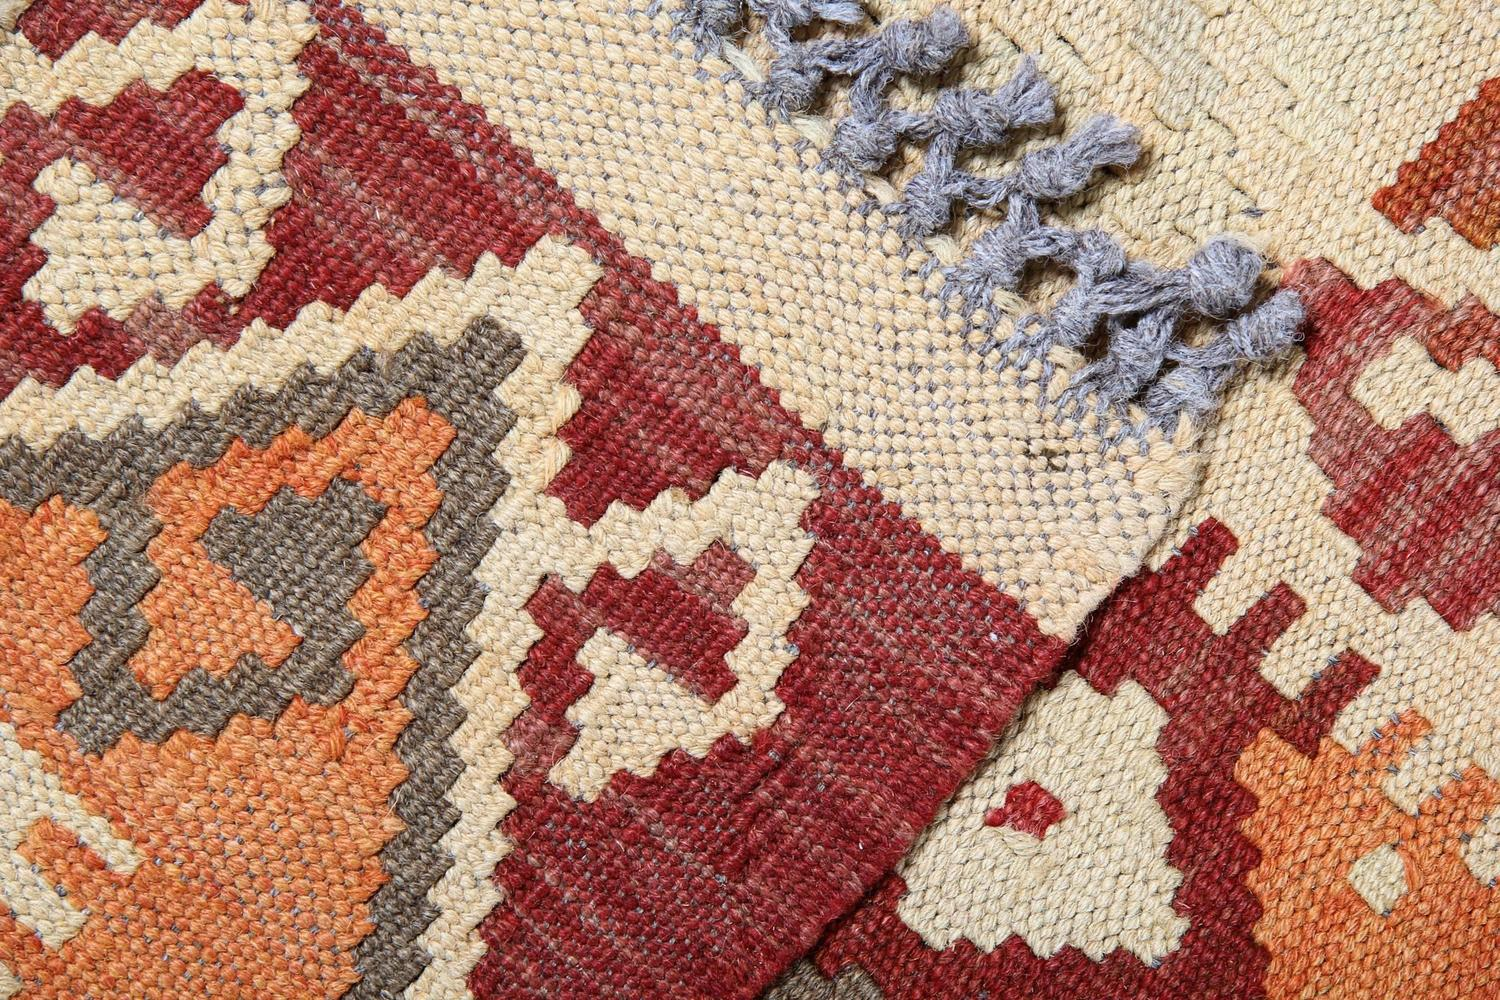 Kilim runner qashqai designs for sale at 1stdibs for Kilim designs